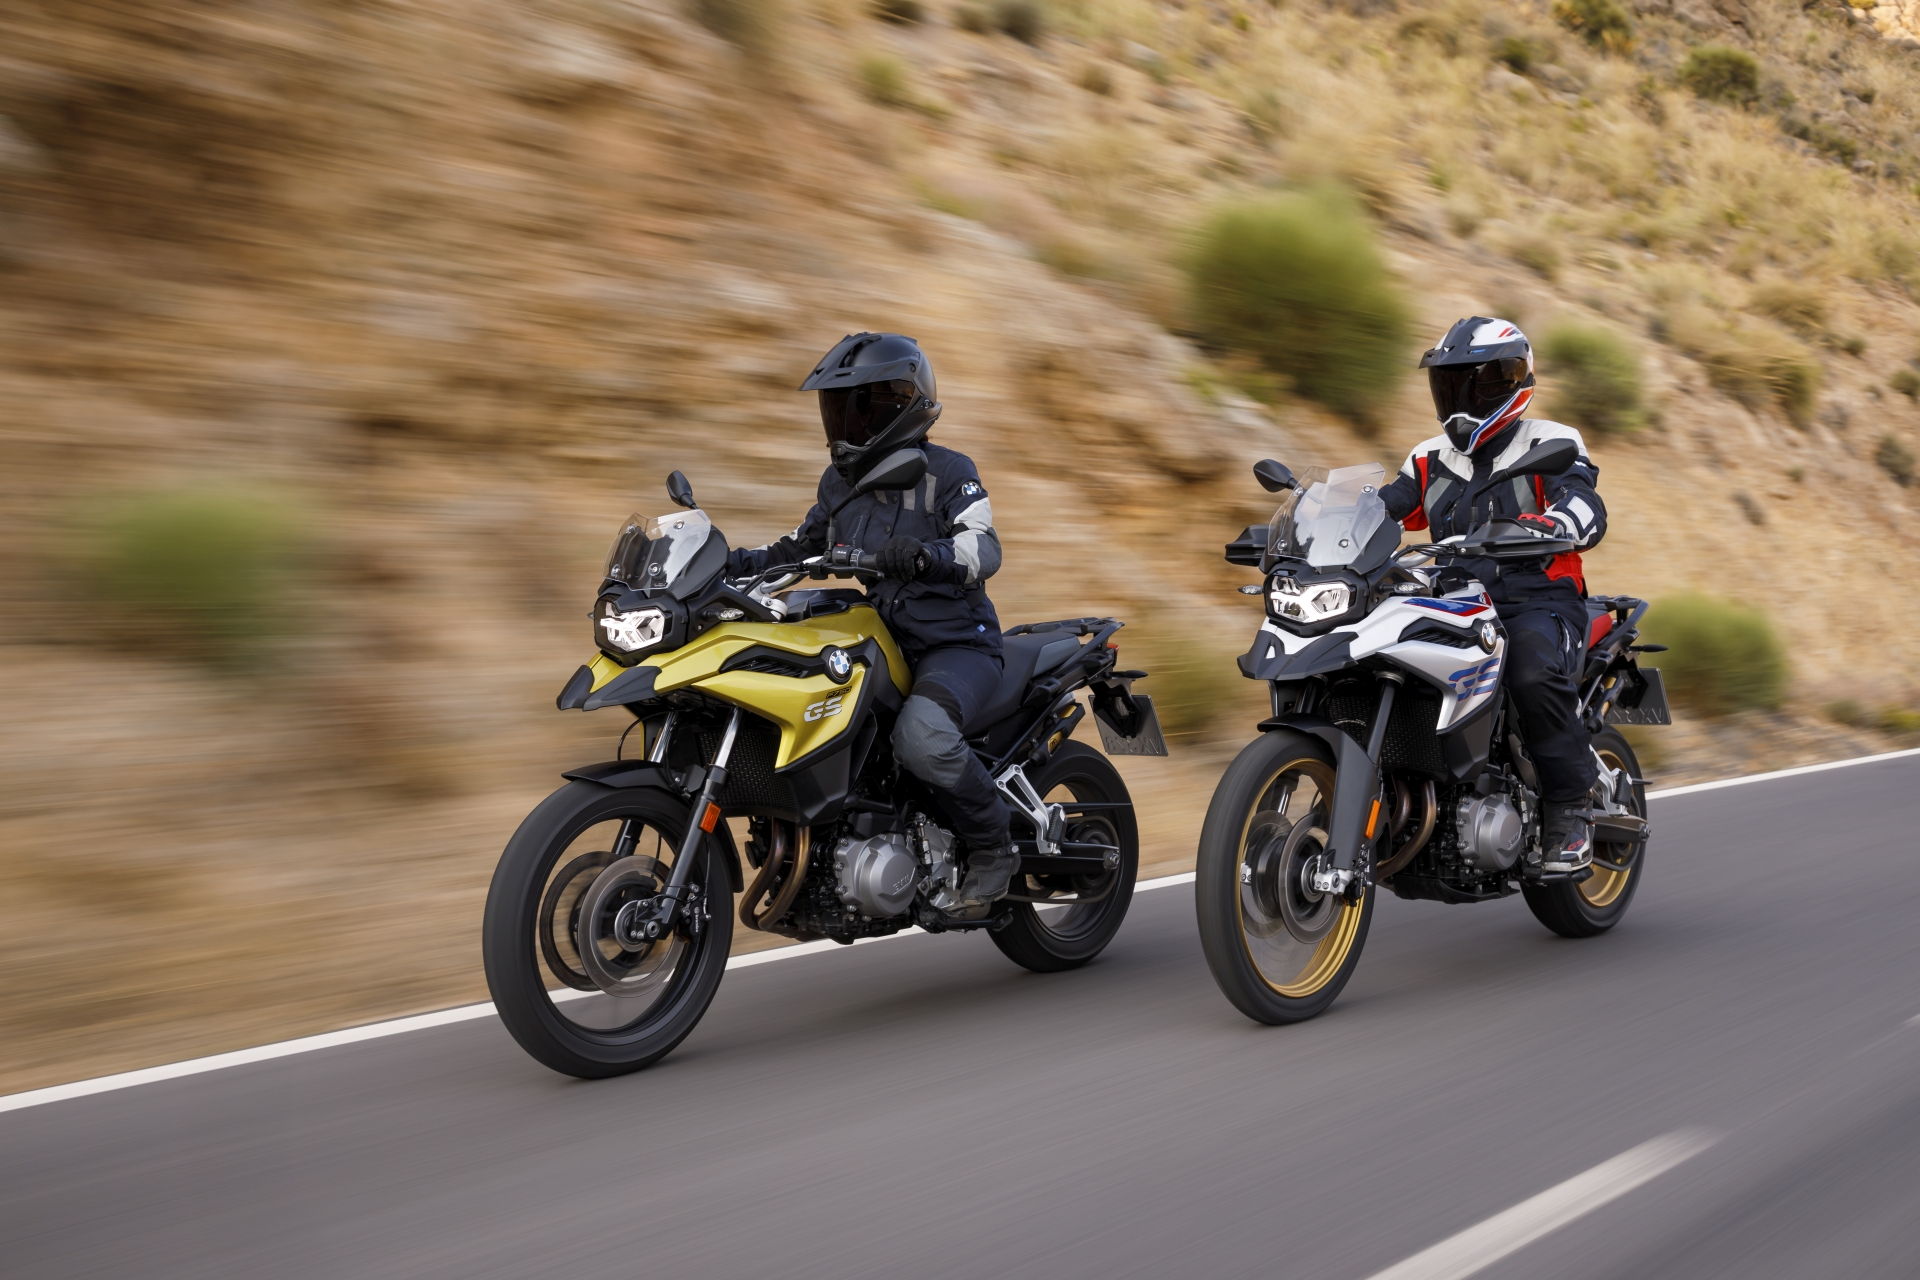 BMW F 750 GS and F 850 GS24